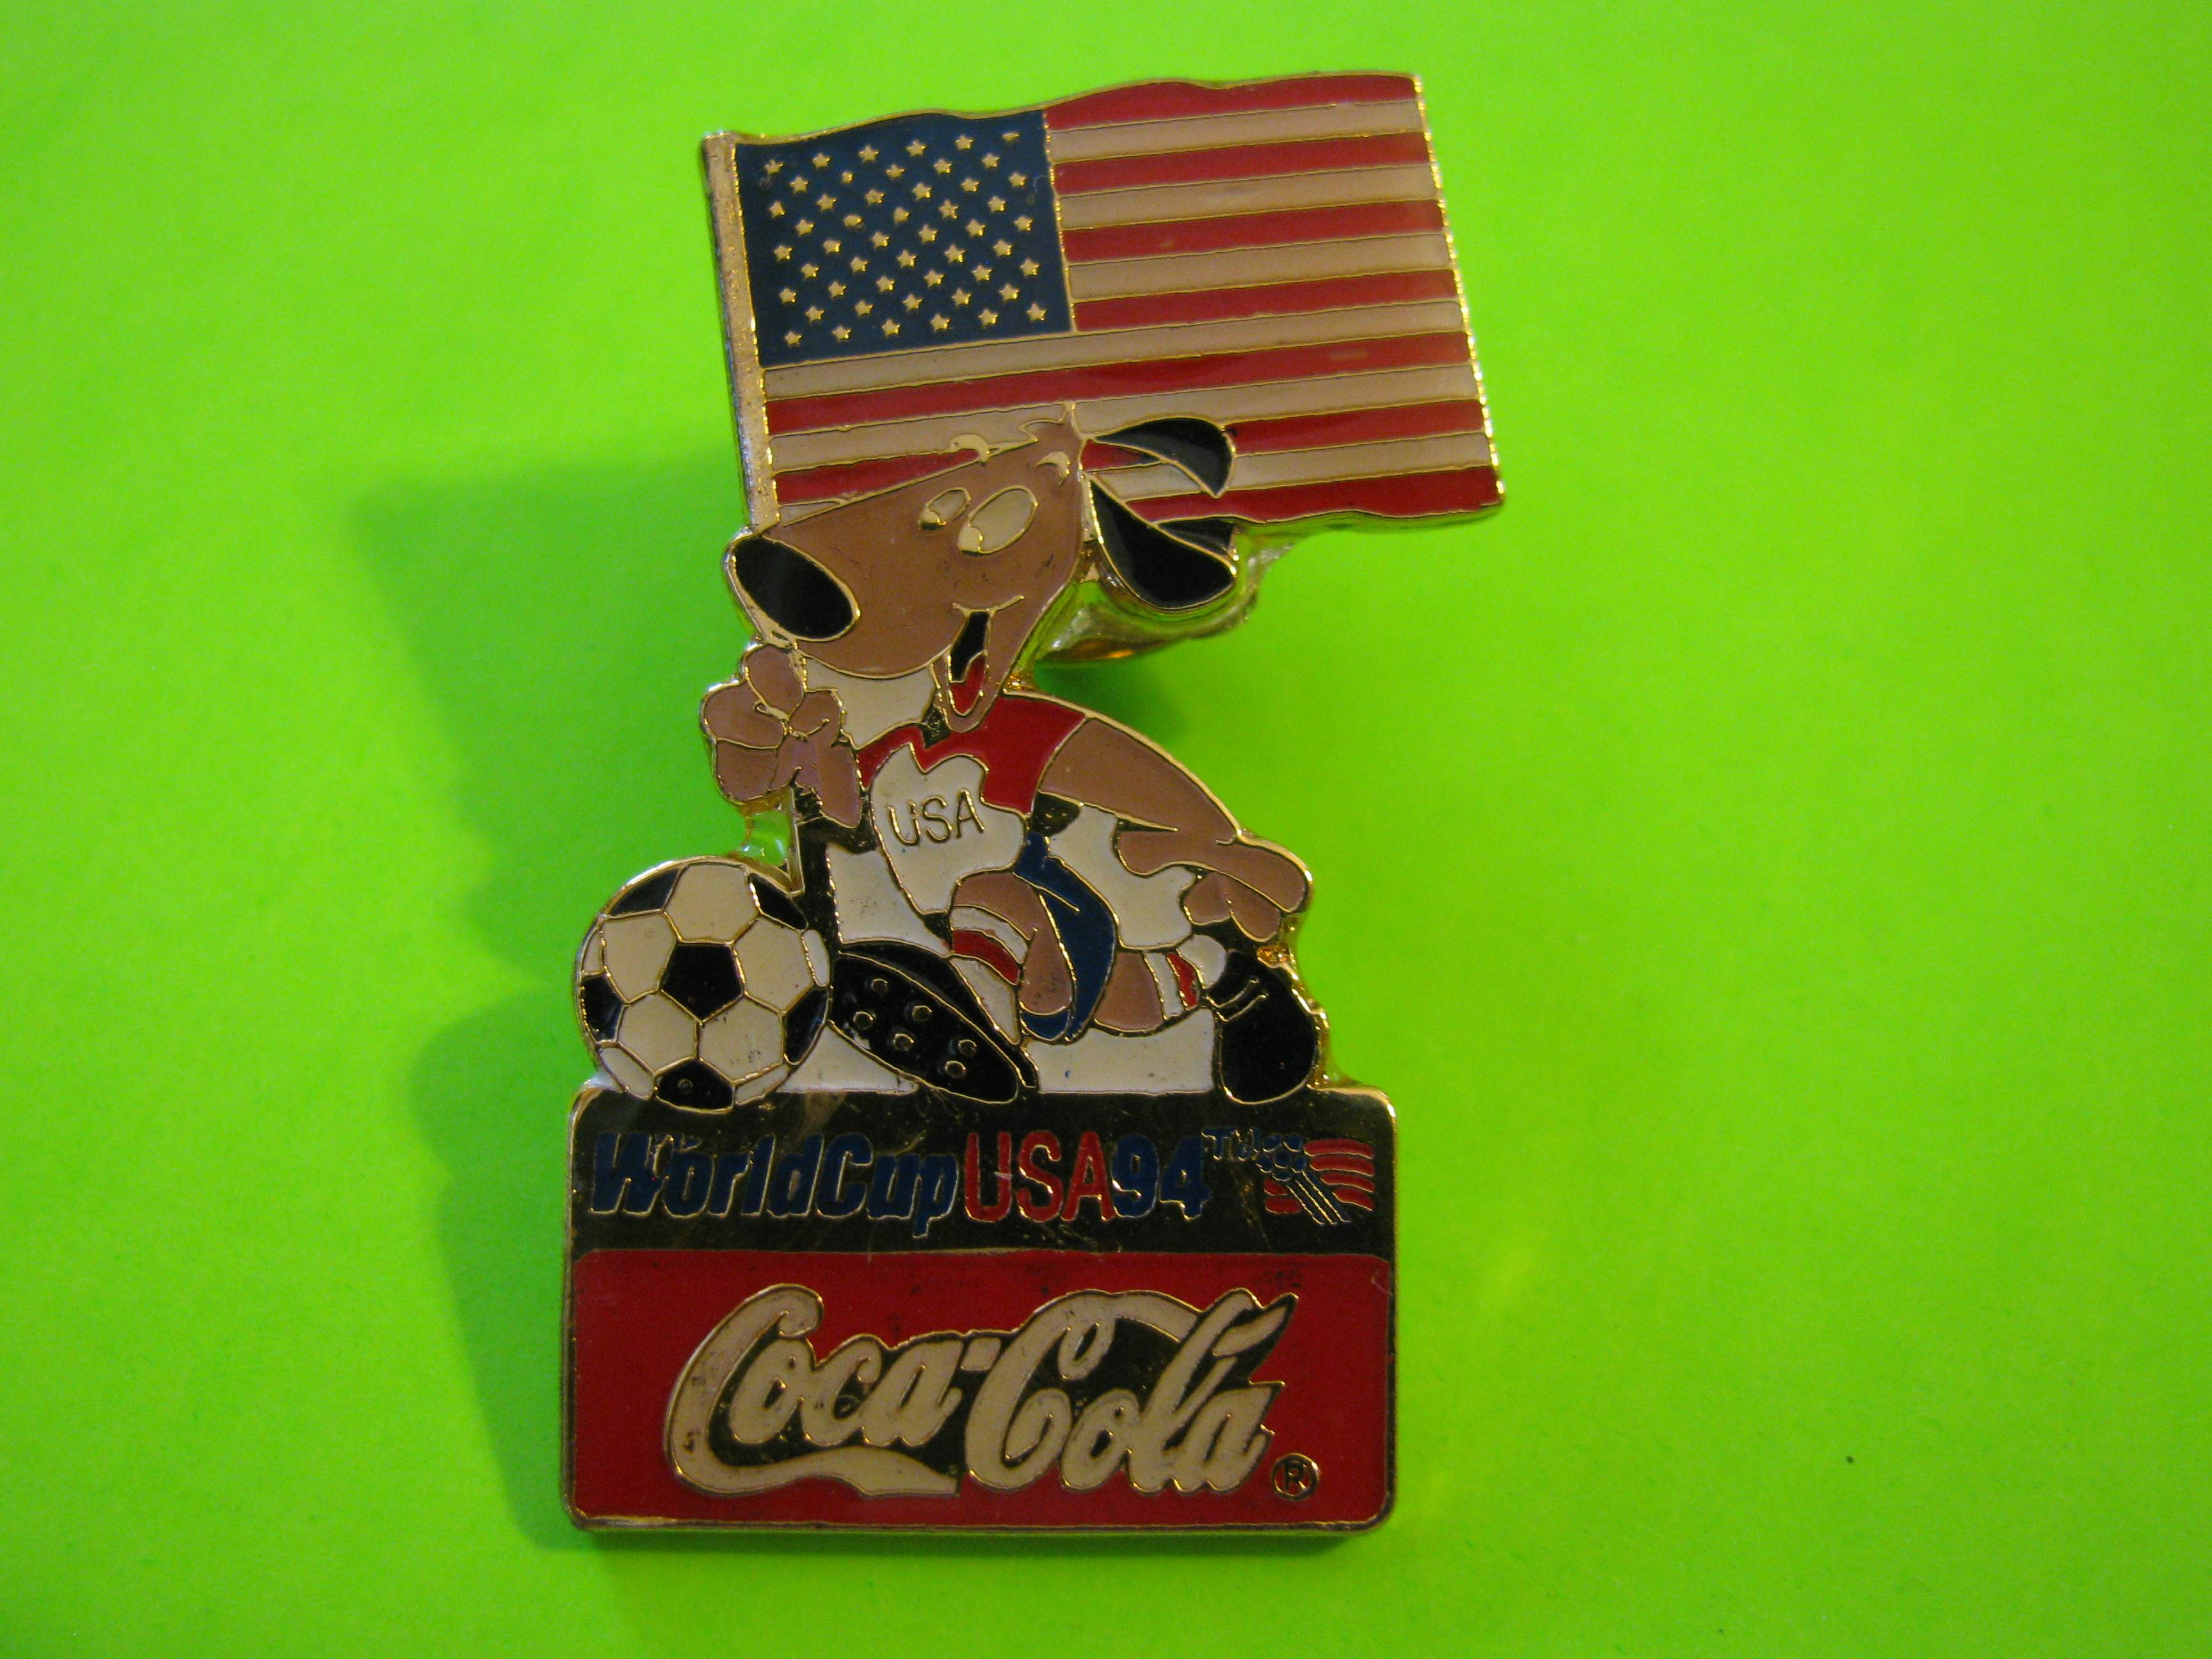 1994 World Cup USA Coca Cola & Team USA Soccer Pin with Butterfly Clutch